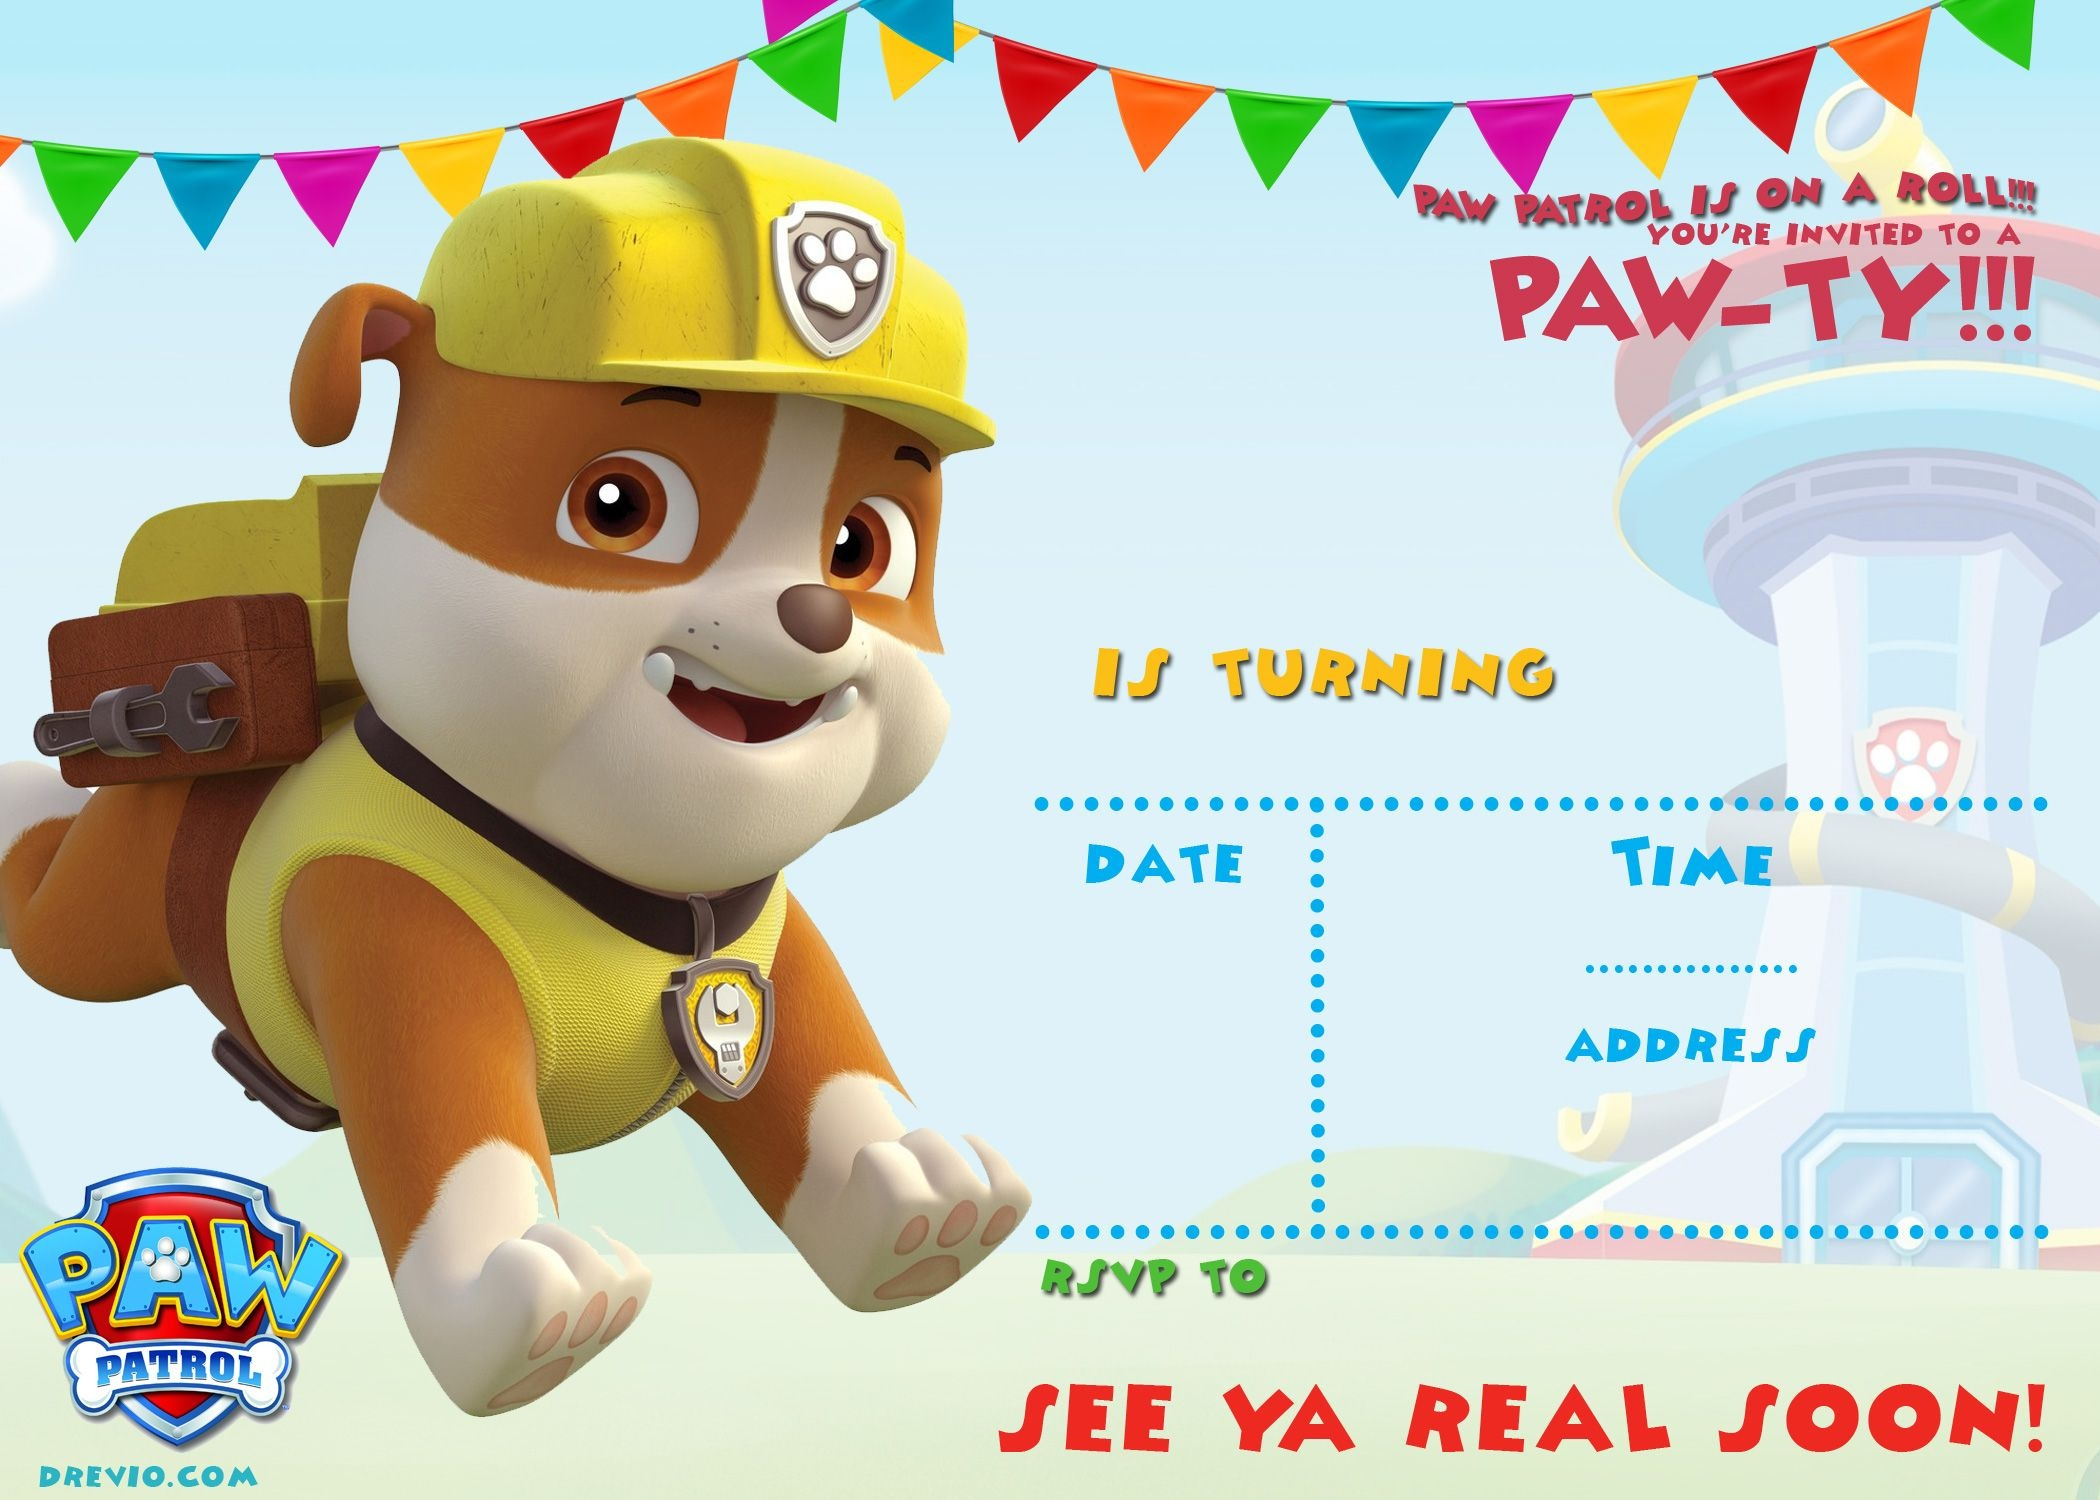 Free Printable Paw Patrol Invitation Template - All Characters - Free Printable Paw Patrol Invitations